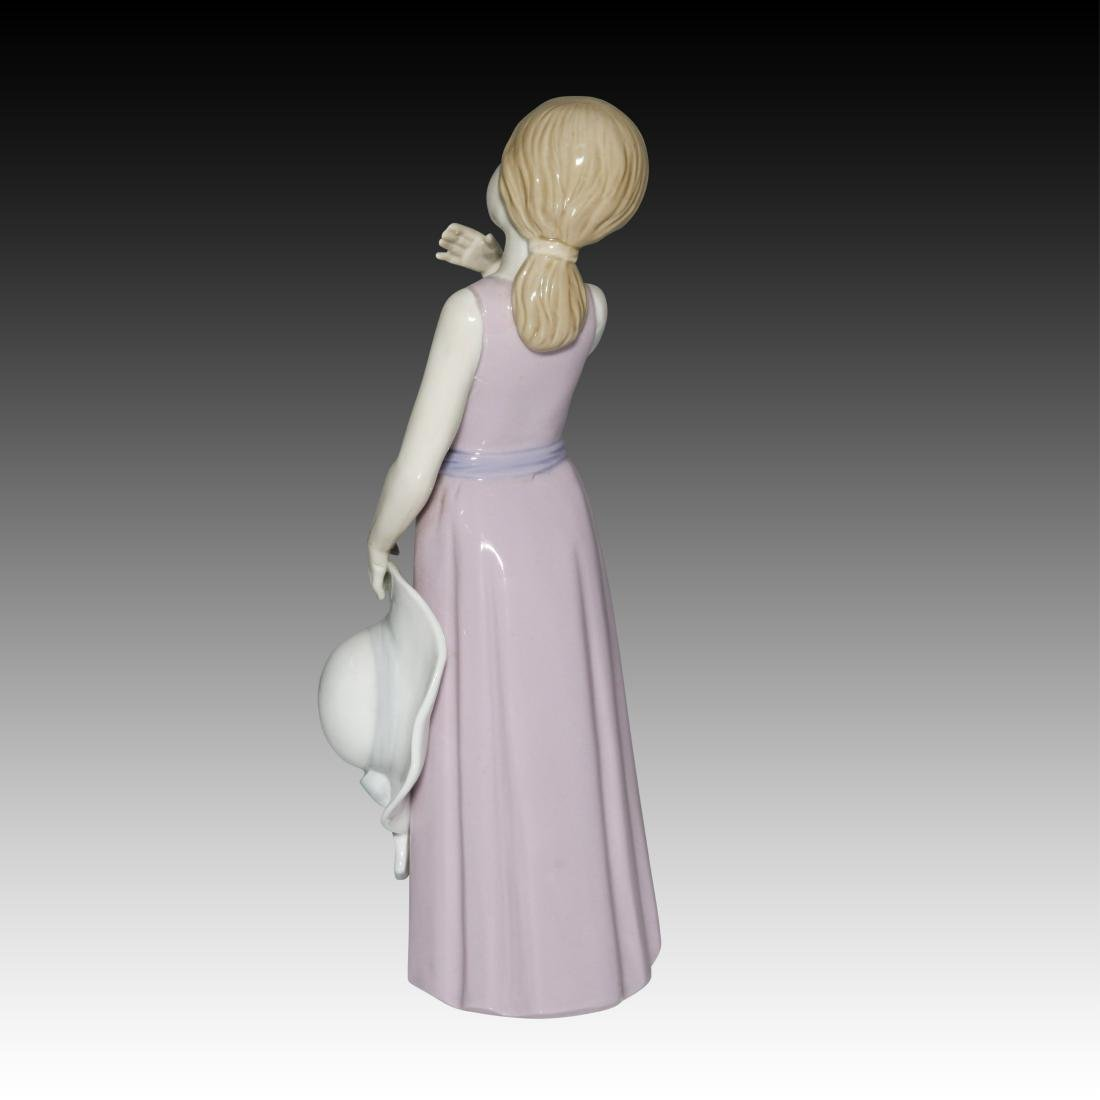 KPM Girl with the Lavender Dress Figurine - 2